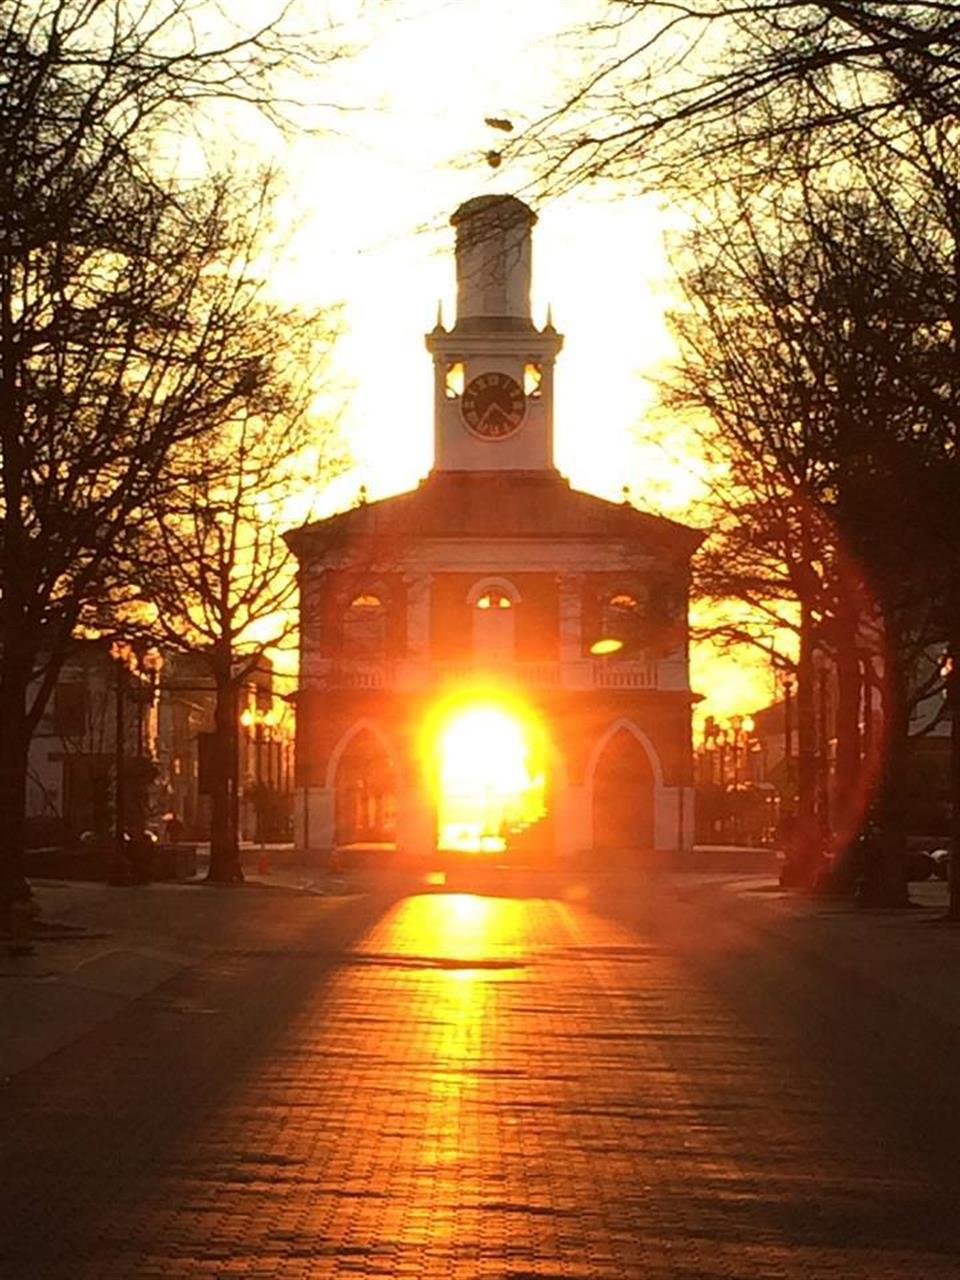 Twice a year the sun rises where it peaks through the arches of Fayetteville North Carolina's historic Market House in the heart of our revitalized downtown area.